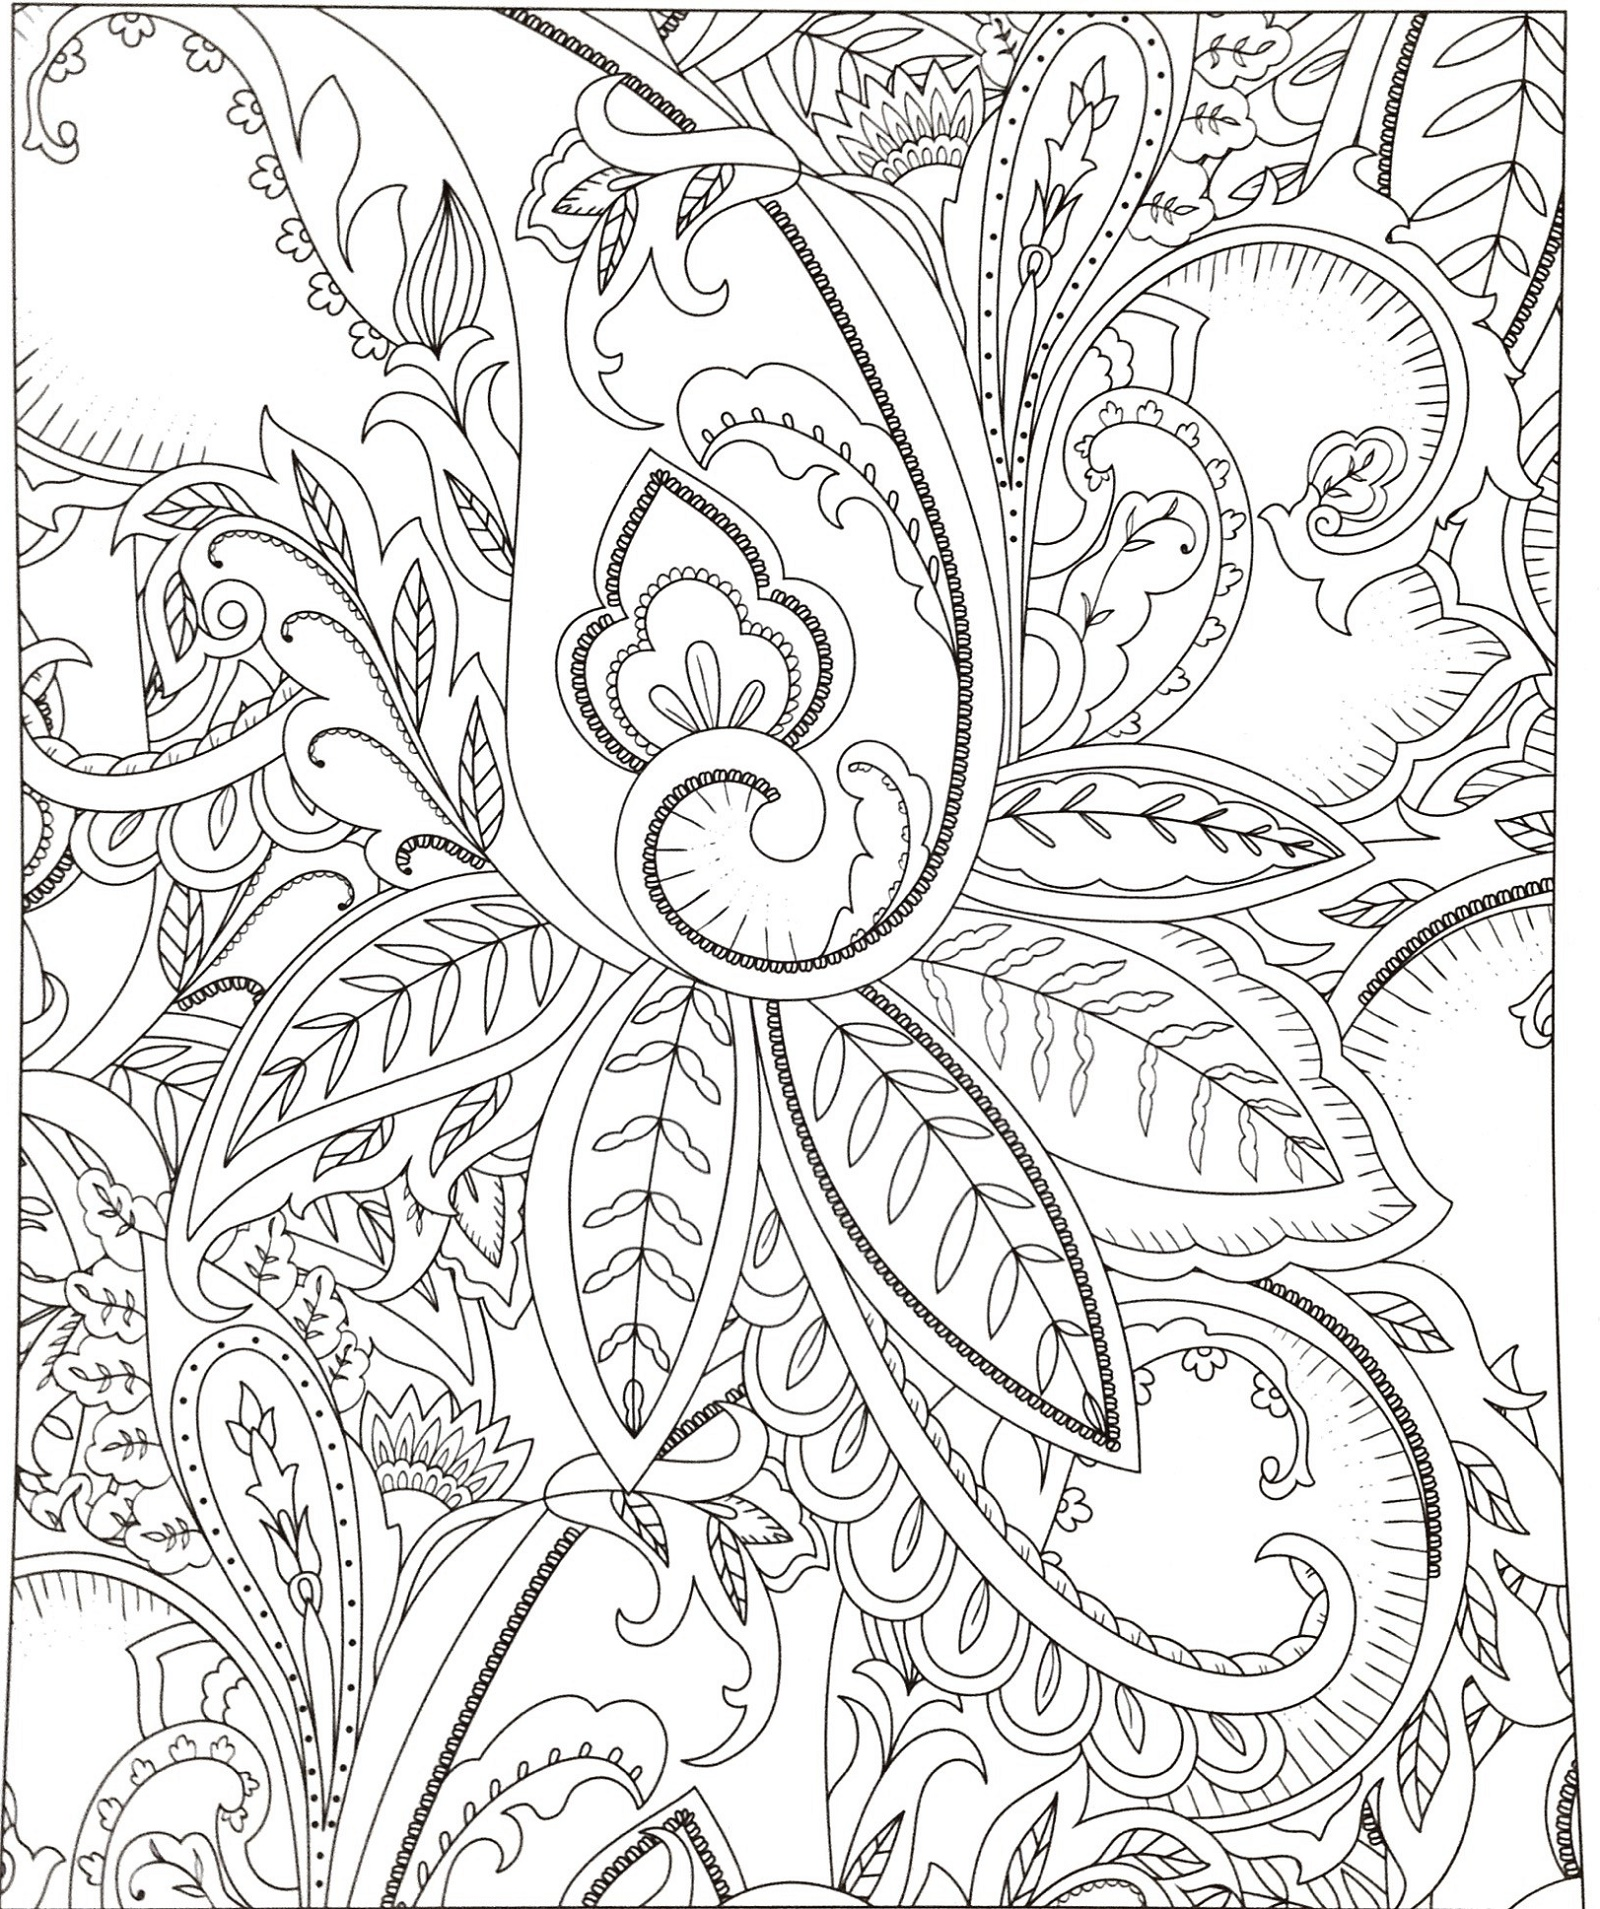 Colorama-Coloring-Book-For-Adults.